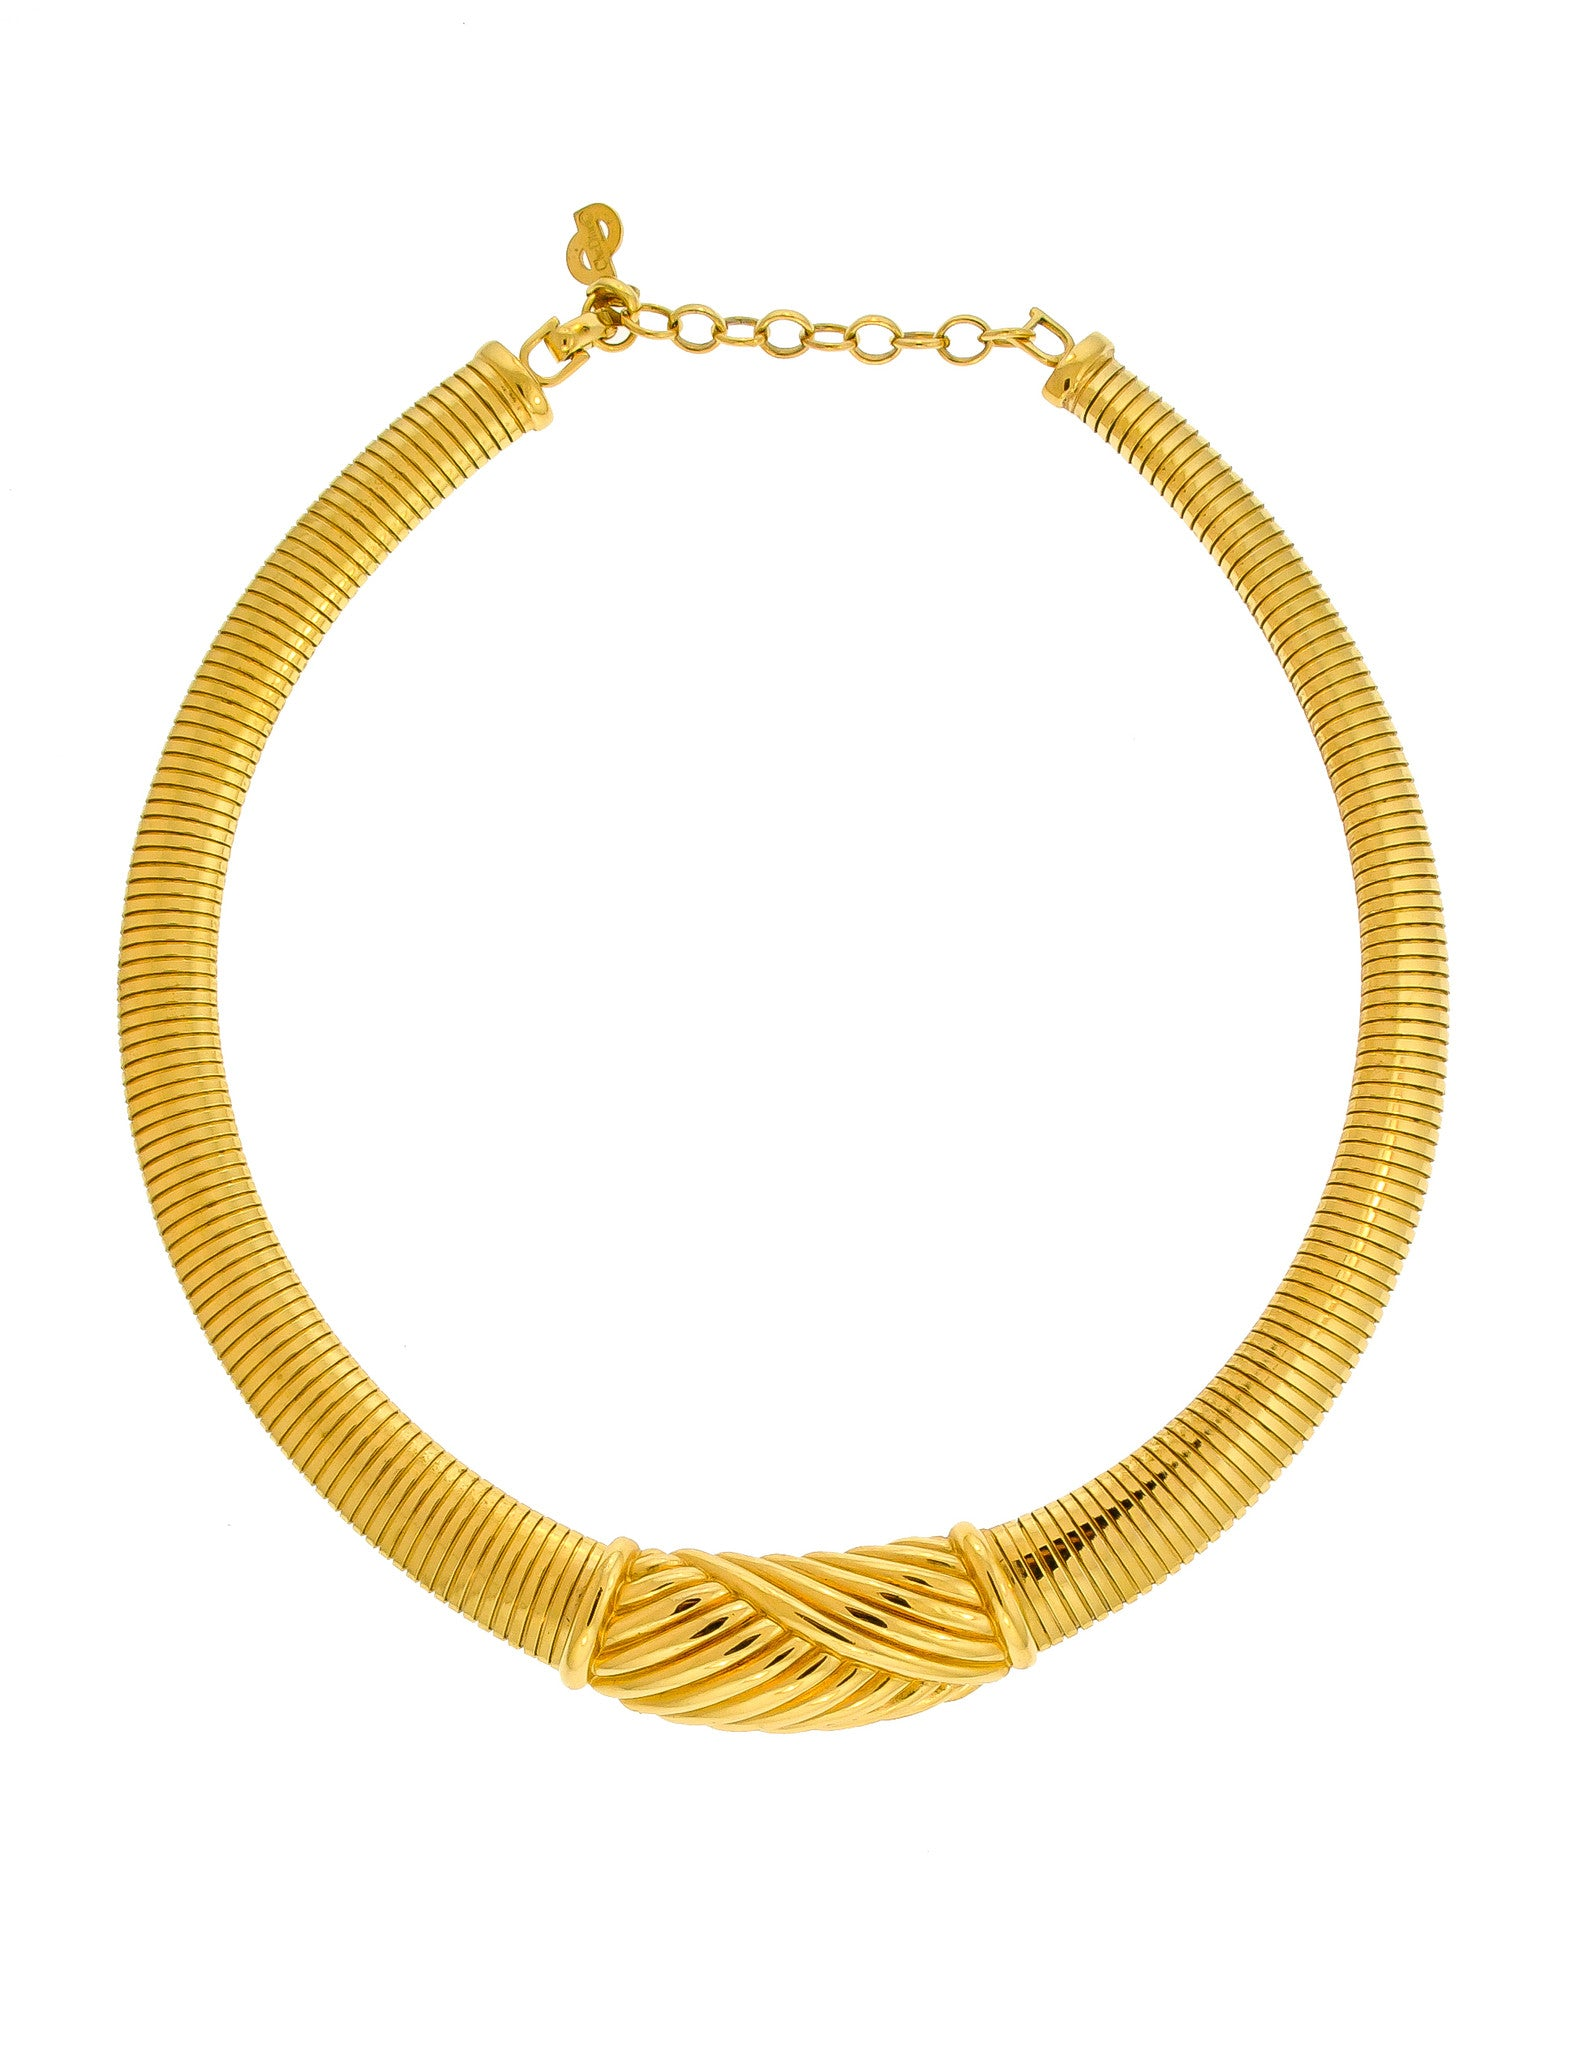 Christian Dior Gold Omega Choker Necklace - Amarcord Vintage Fashion  - 1